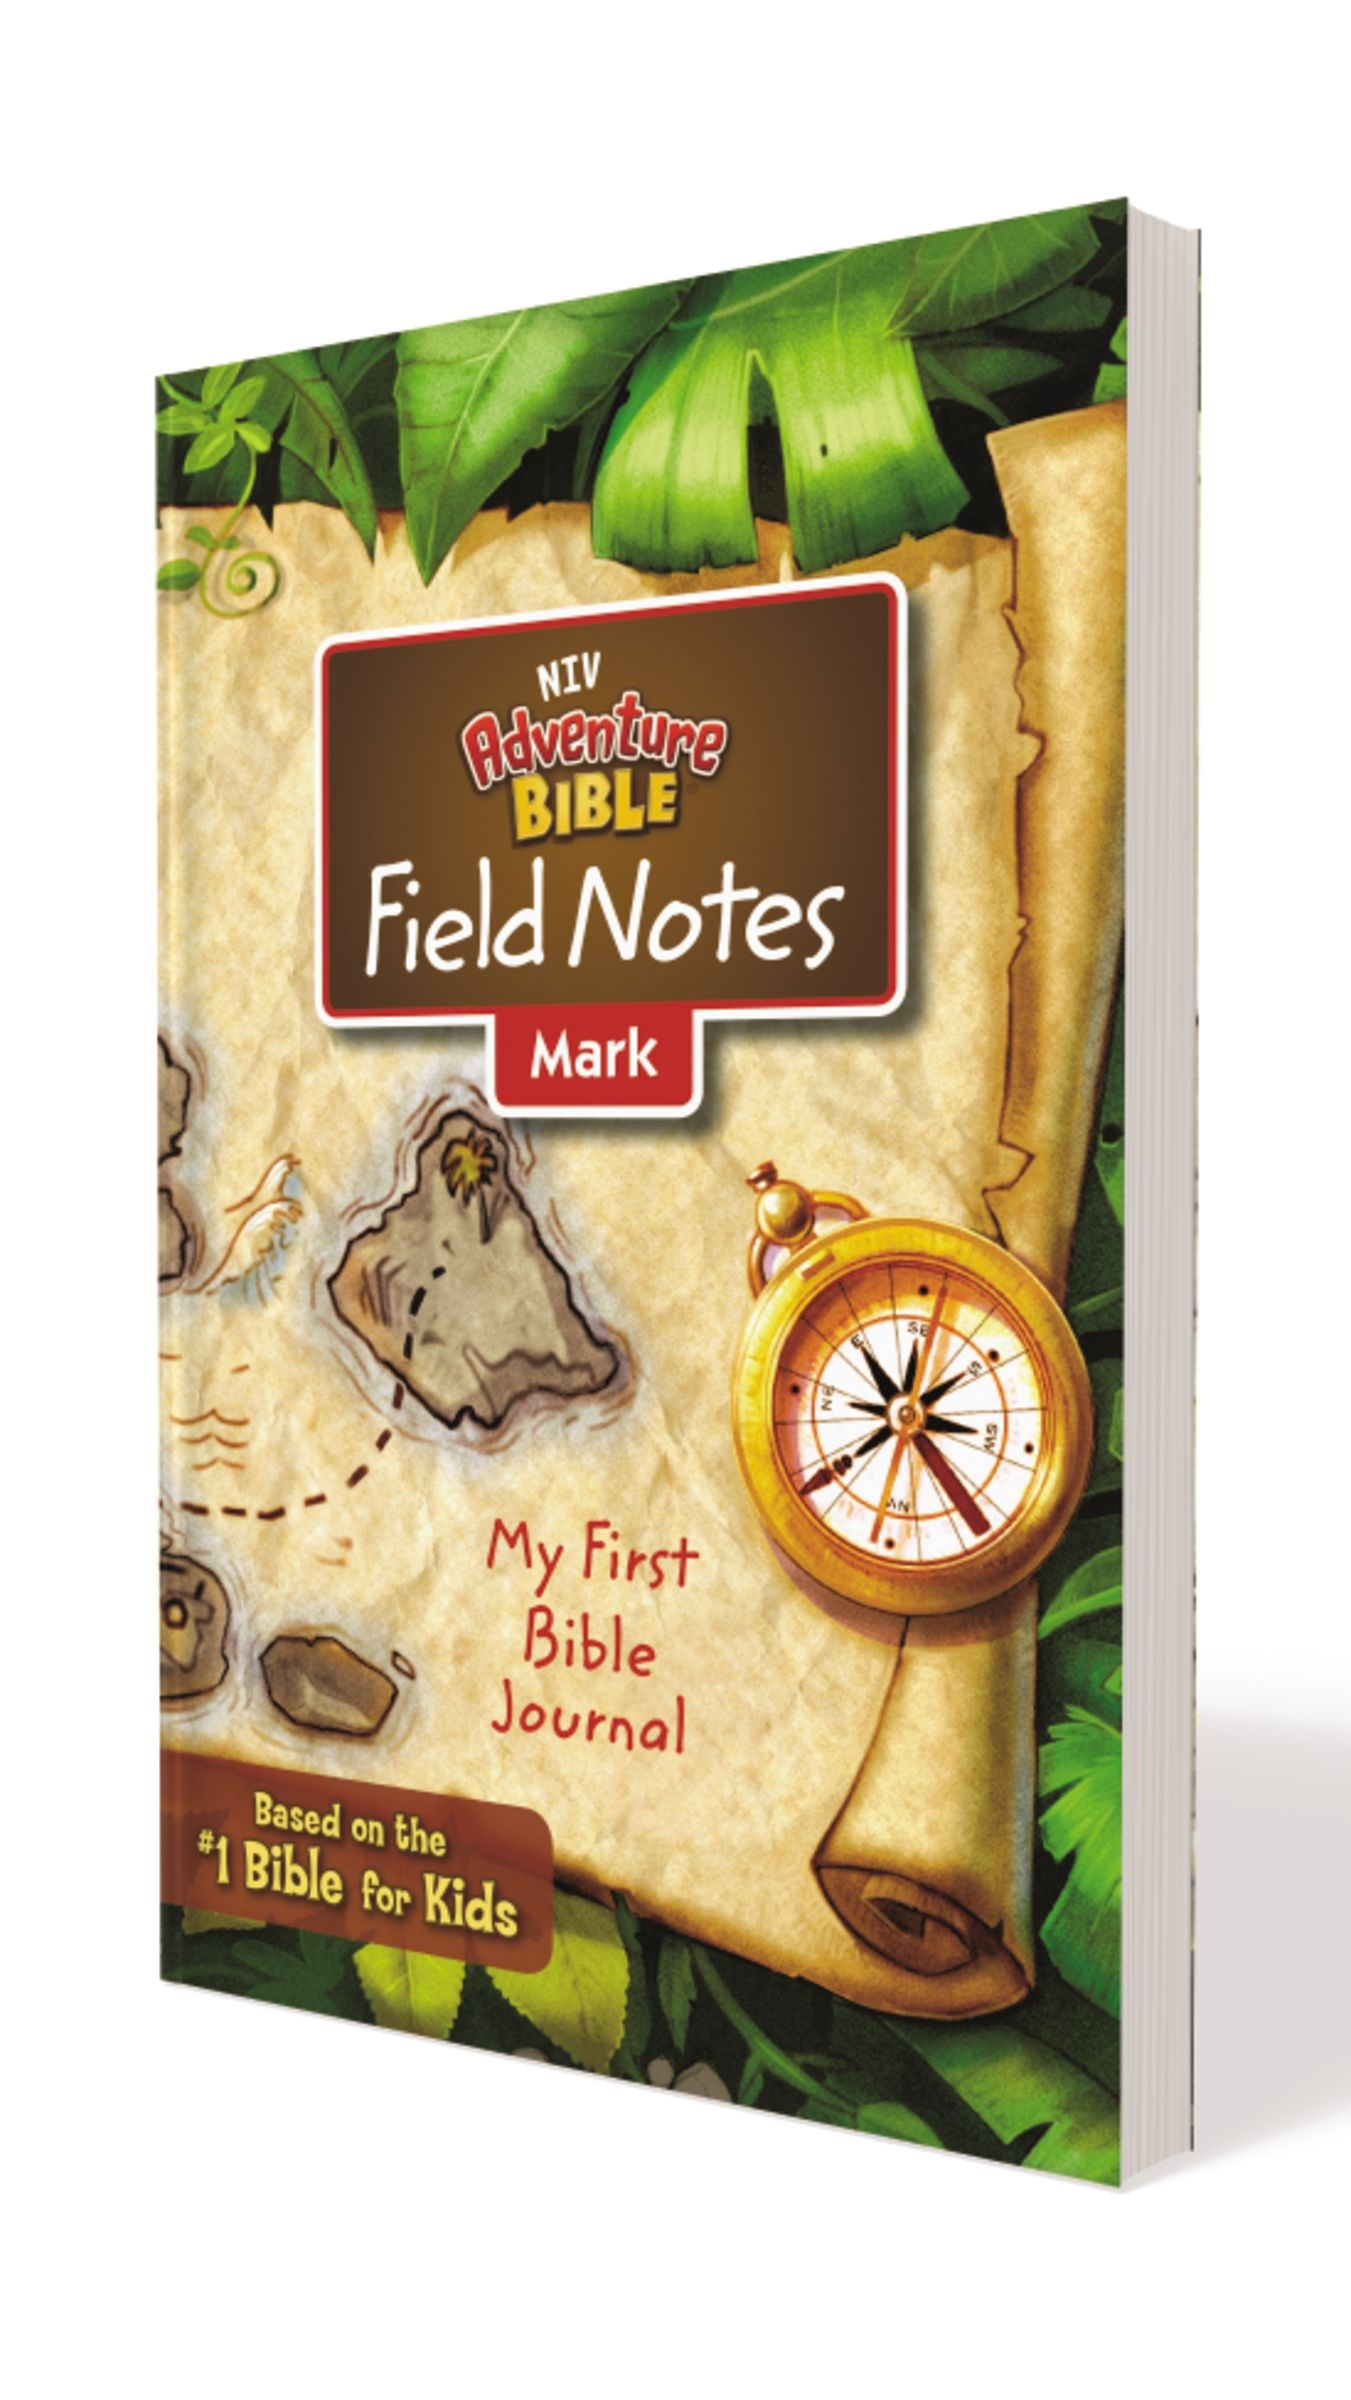 NIV Adventure Bible Field Notes: Mark (Comfort Print)-Softcover